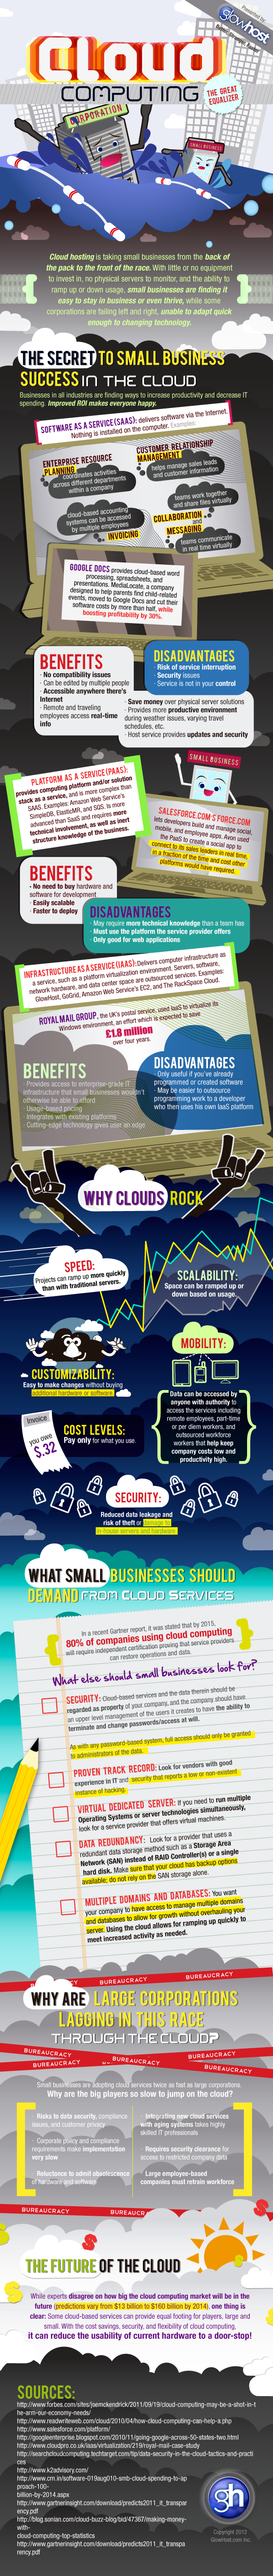 Cloud For SMB Graphic How SMBs Can Prosper In The Cloud